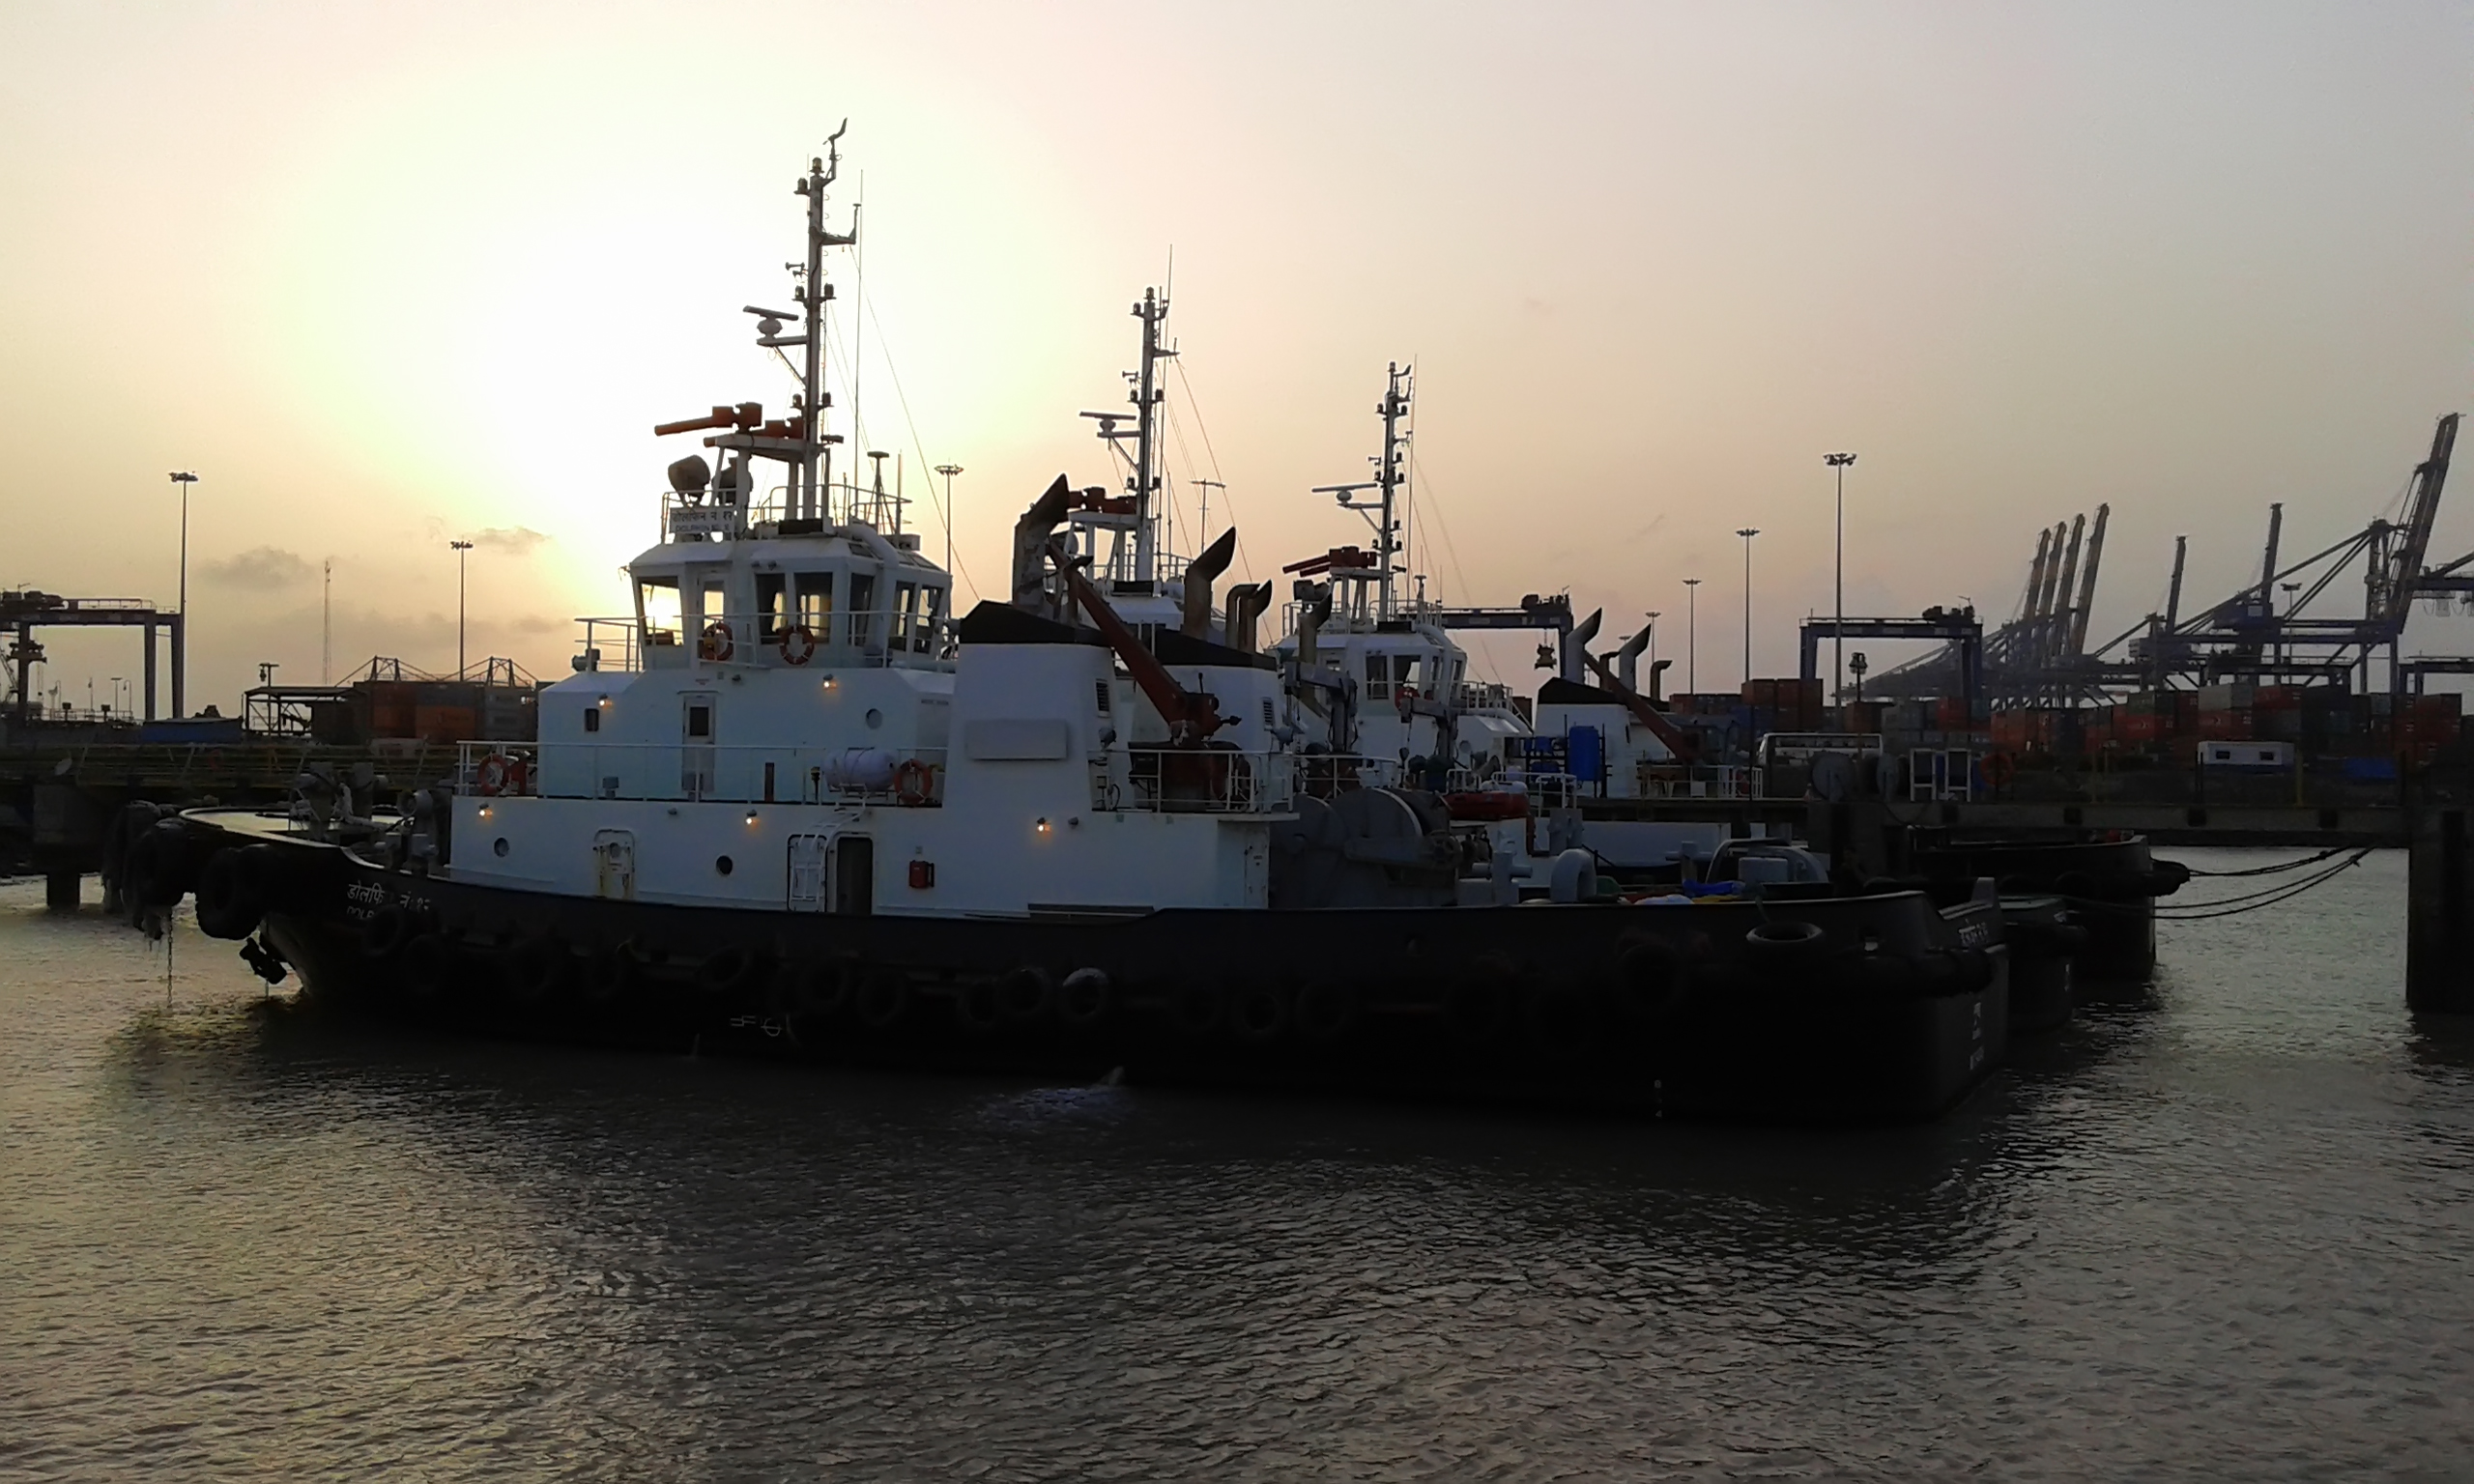 Ship parked at port